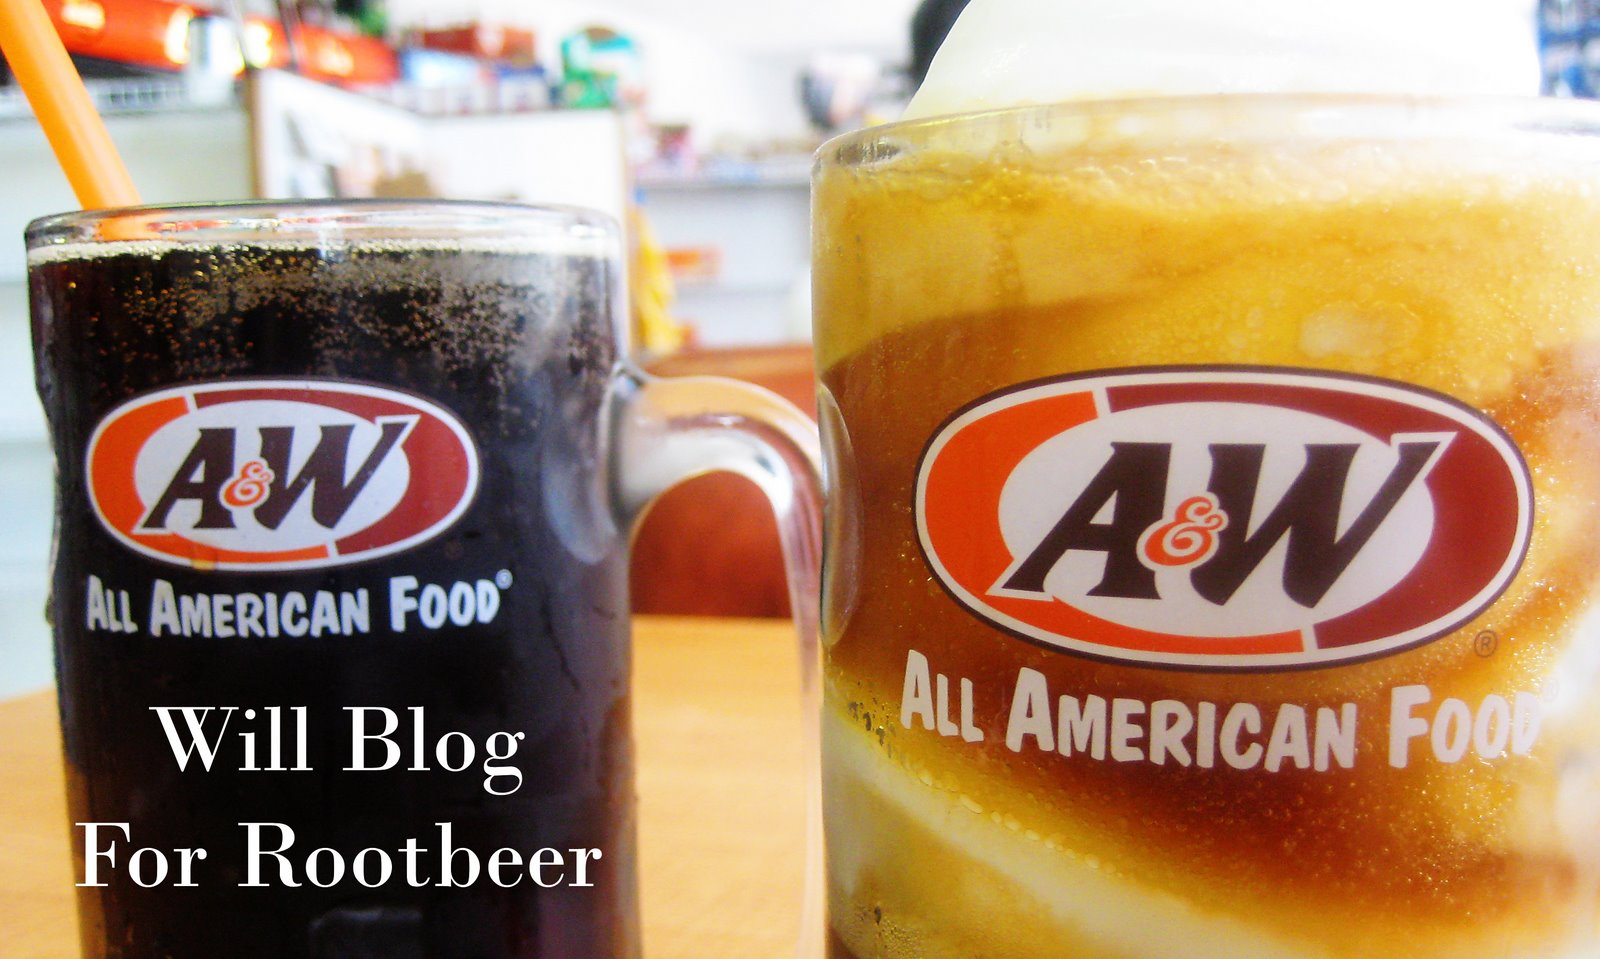 Will Blog For Rootbeer